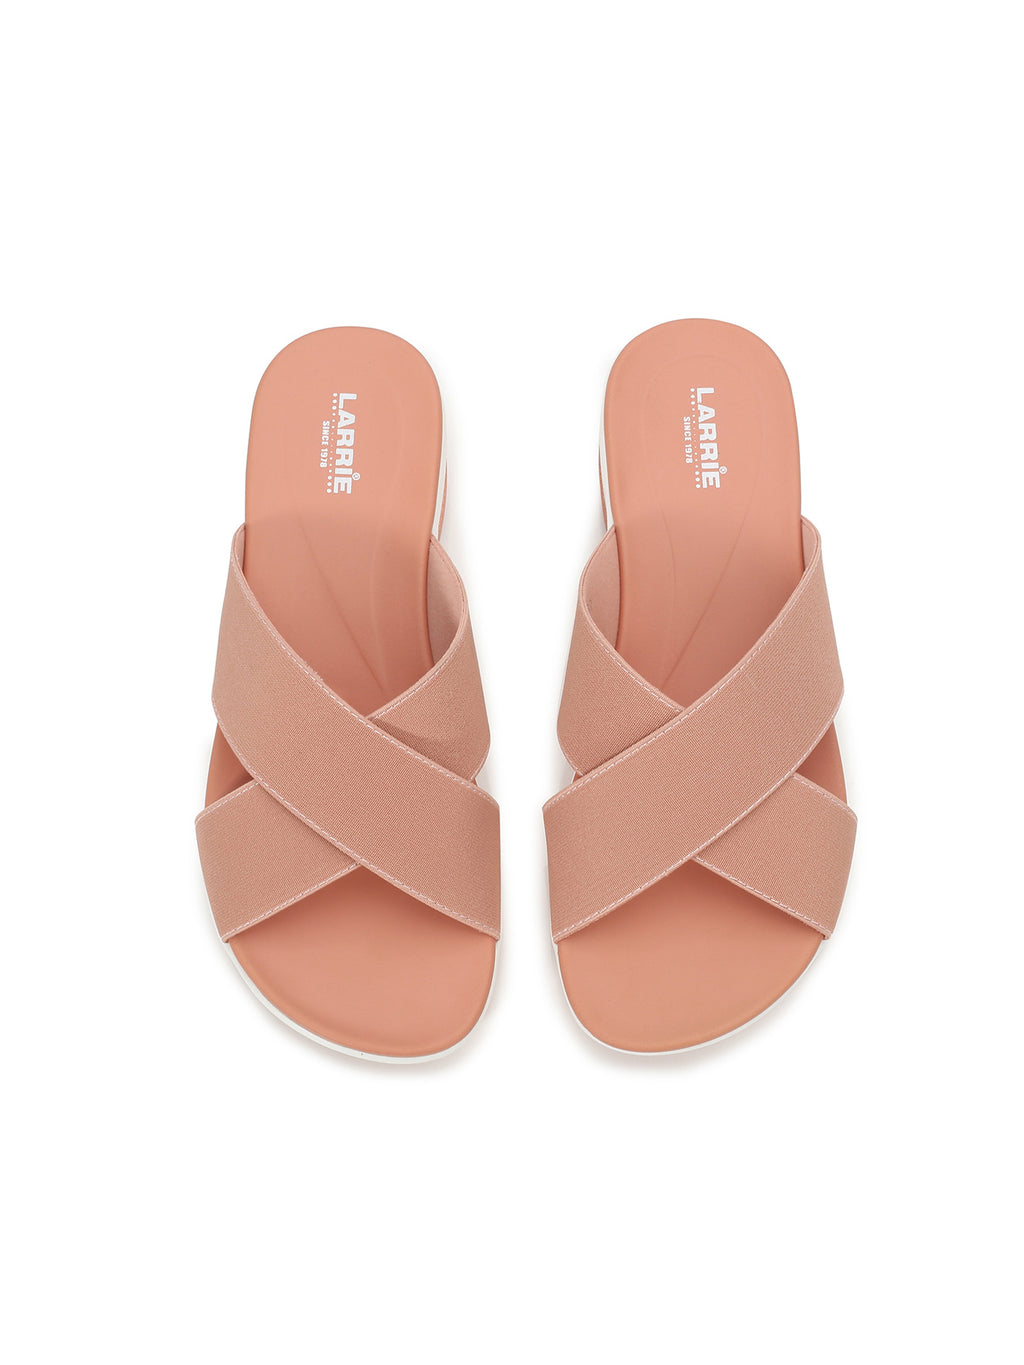 Larrie Pink Light Coloured Feminine Casual Sandals